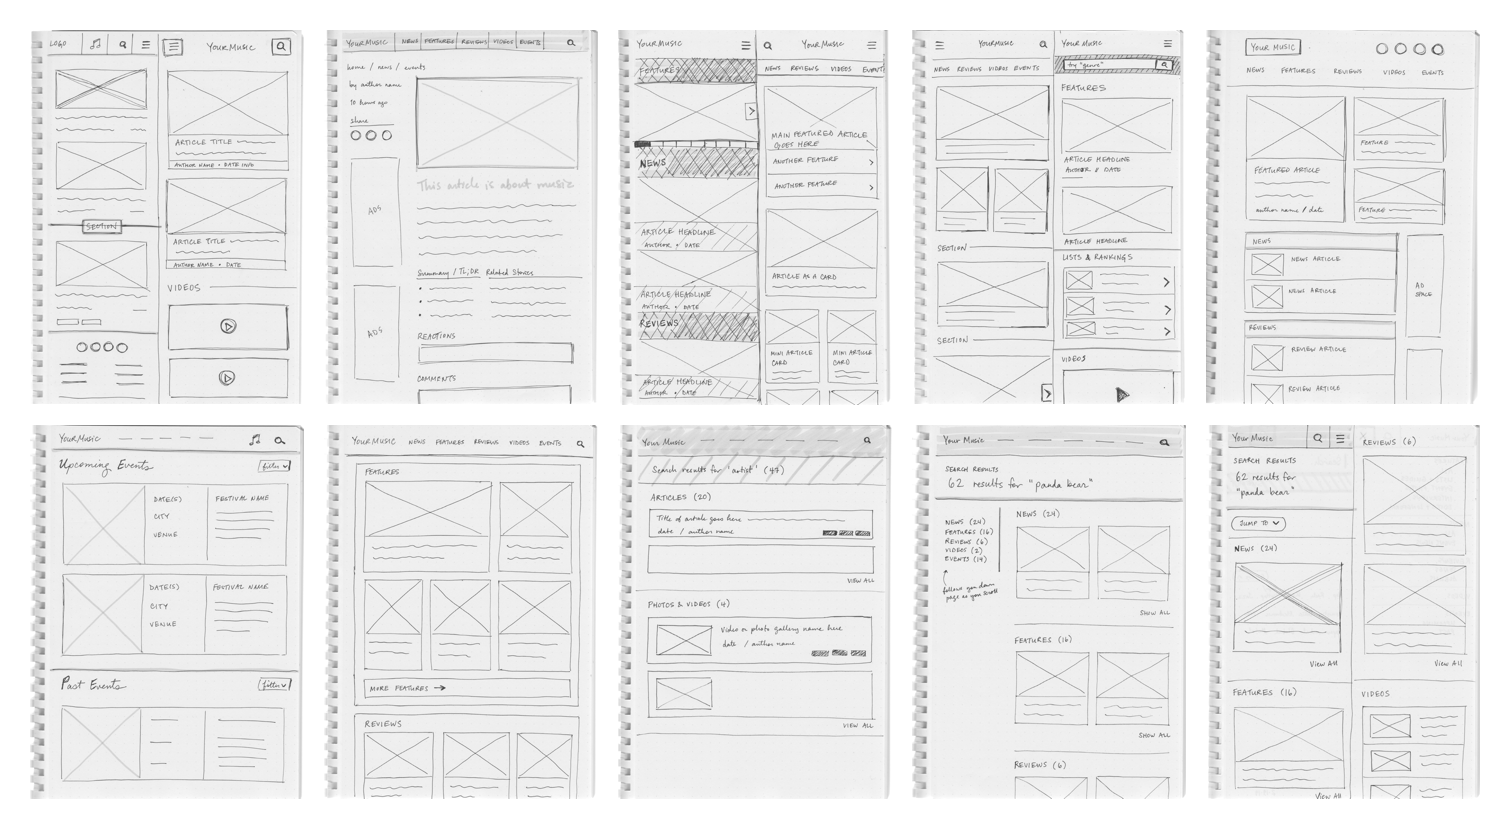 Wireframe Sketches for Case Study V1